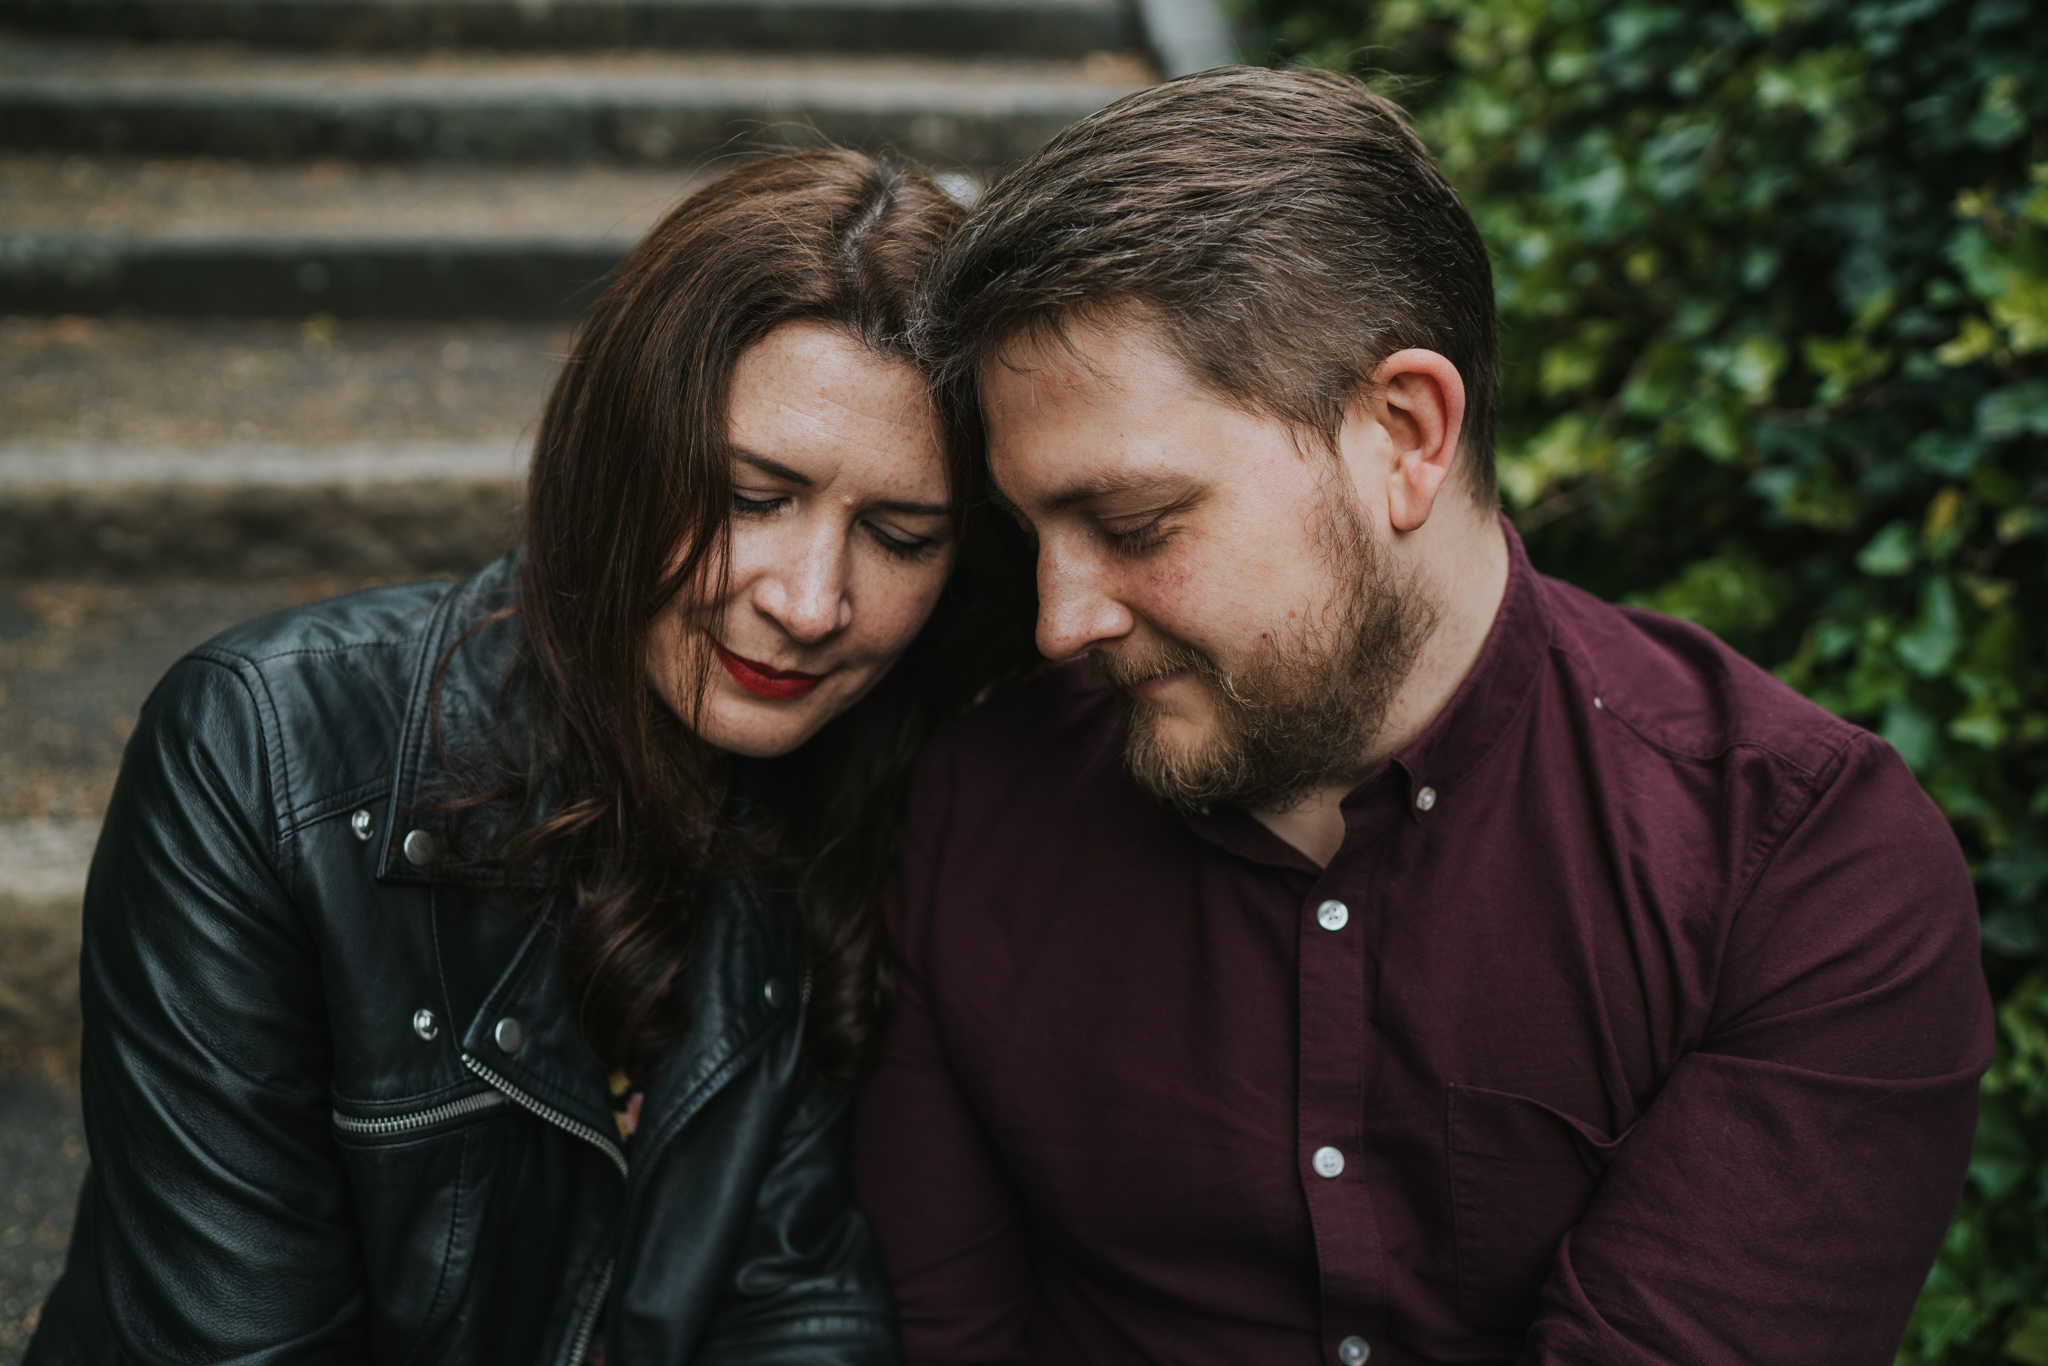 natalie-john-urban-london-engagement-grace-elizabeth-colchester-essex-alternative-wedding-photographer-essex-suffolk-norfolk-devon (22 of 66).jpg